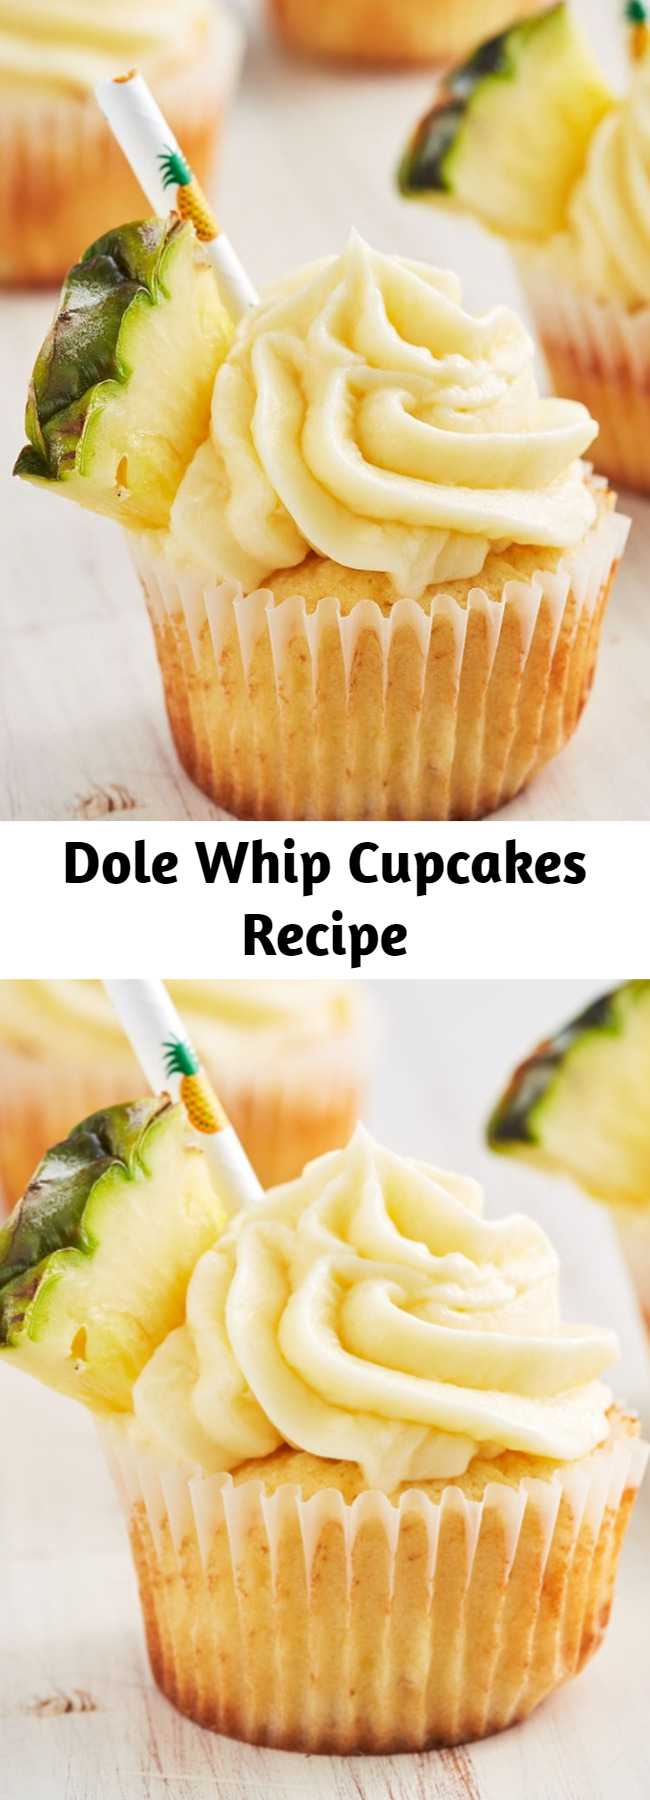 Dole Whip Cupcakes Recipe - Dole Whip has a cult following and we get it. It's the most refreshing thing after waiting in insanely long lines all day. Well now you don't have to travel to Disney for it and the cupcake version is even better.